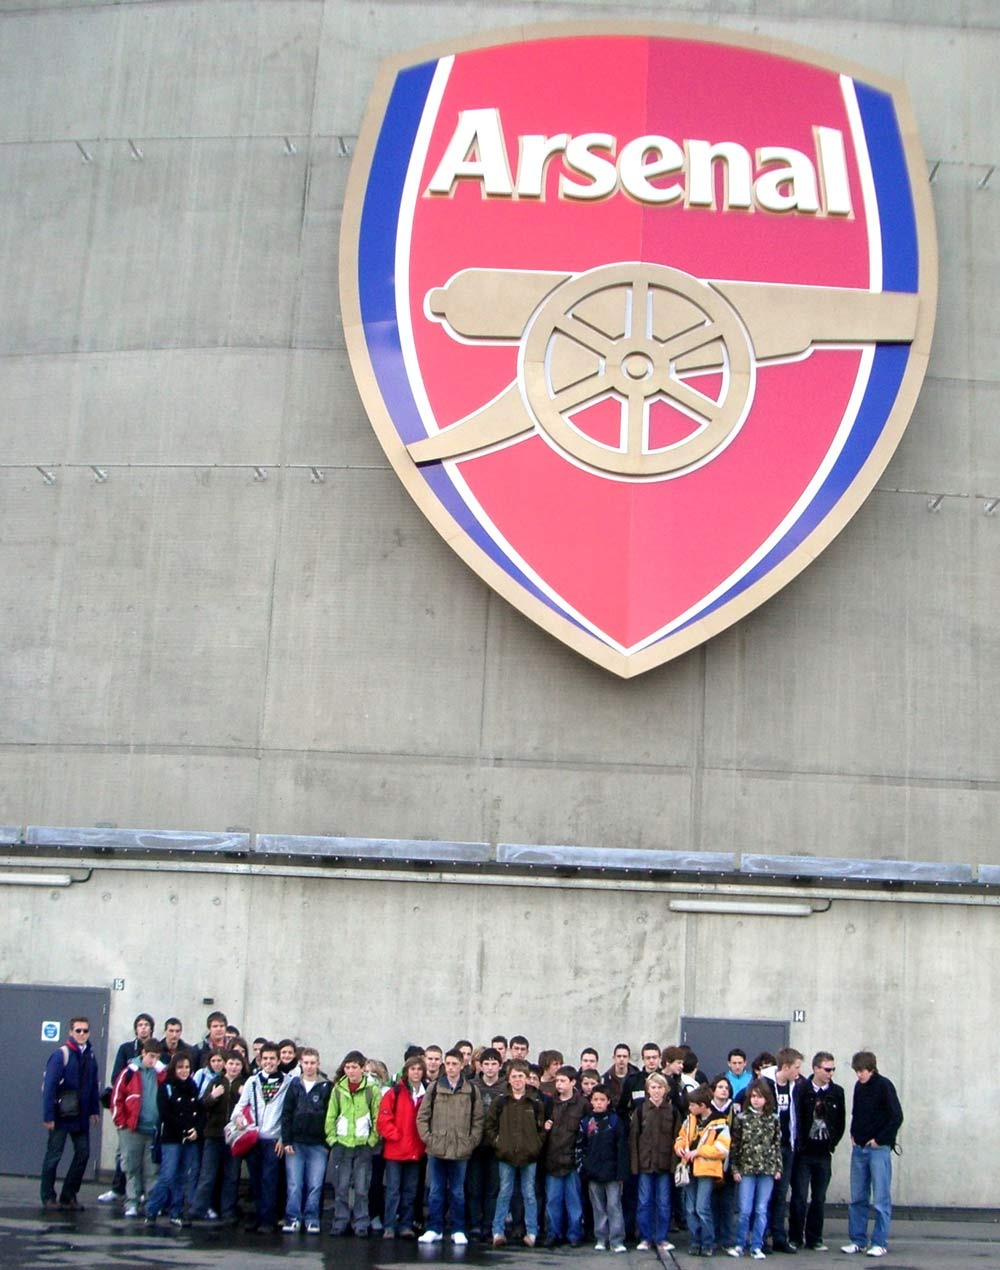 londres-arsenal